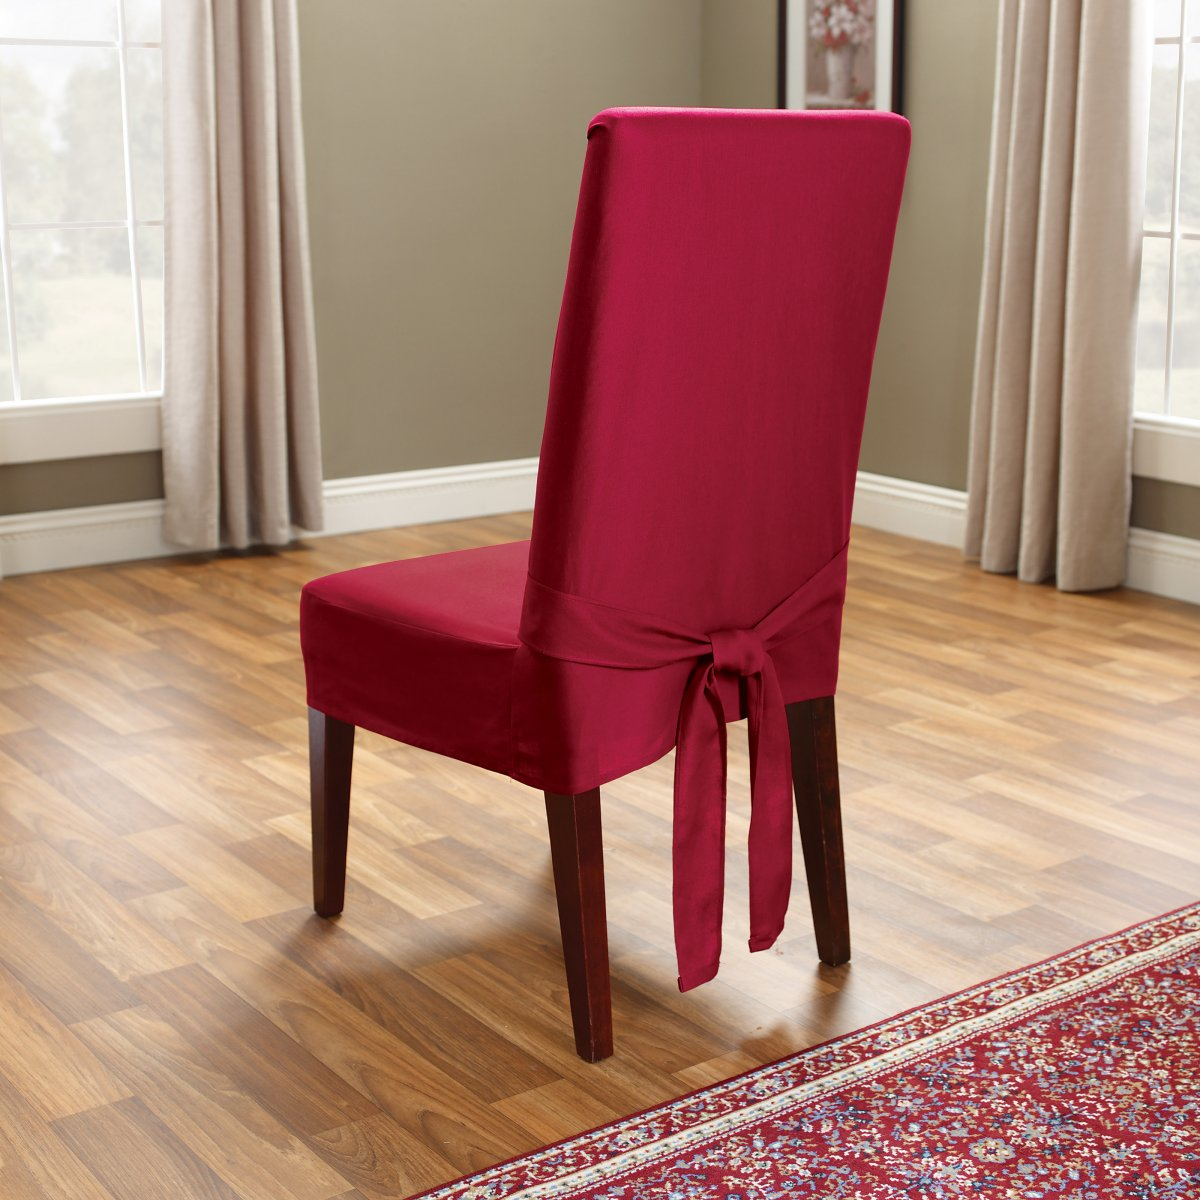 dining room chair cover ideas photo - 2